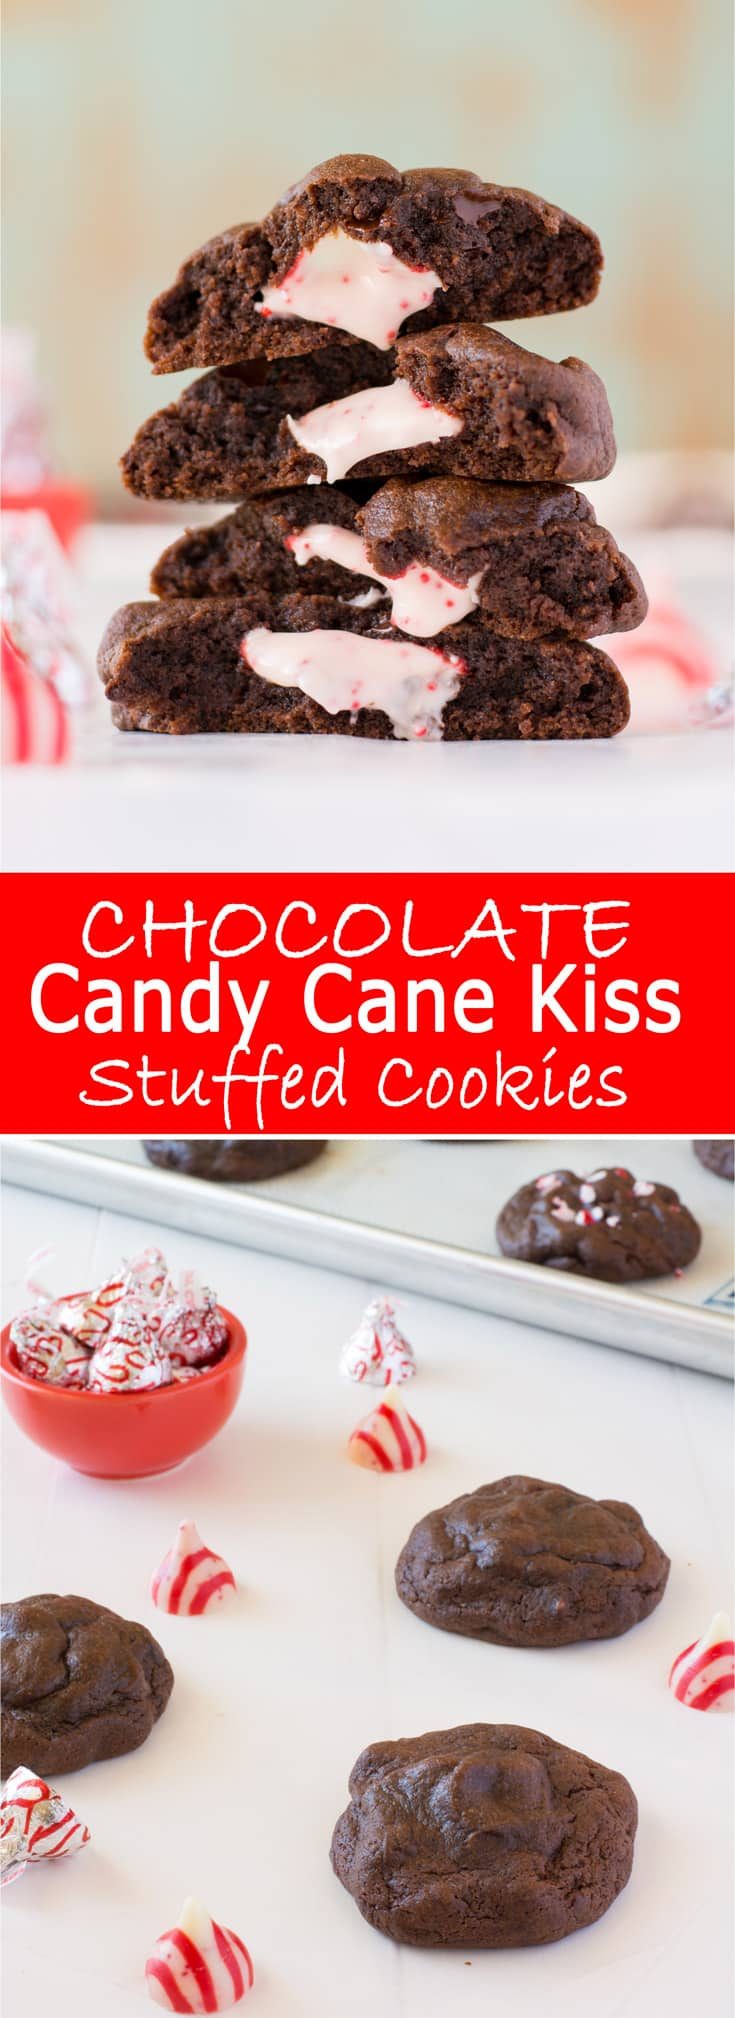 Chocolate Candy Cane Kiss Stuffed Cookies - soft and fudgy chocolate pudding cookies stuffed with peppermint swirled kisses and 5 types of chocolate to satisfy your cravings! | Kitchen Gidget